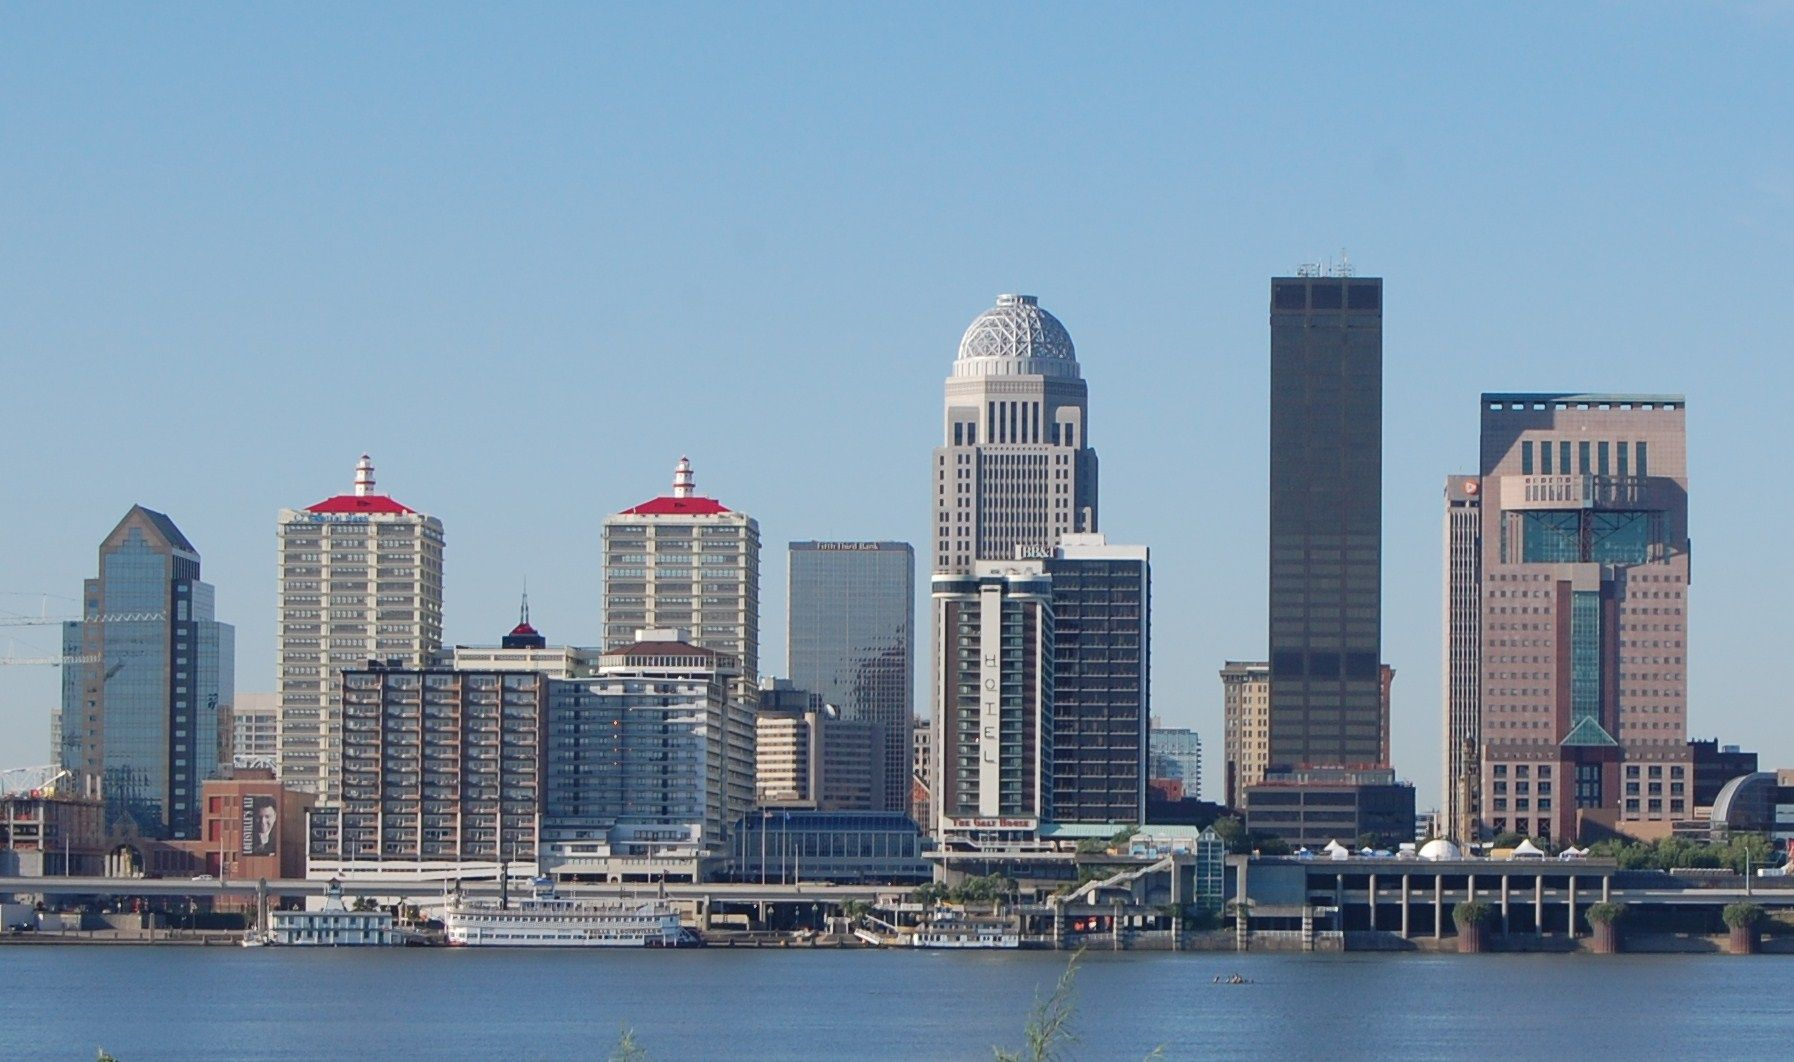 Louisville Skyline Pre Yum center | Places I've Been